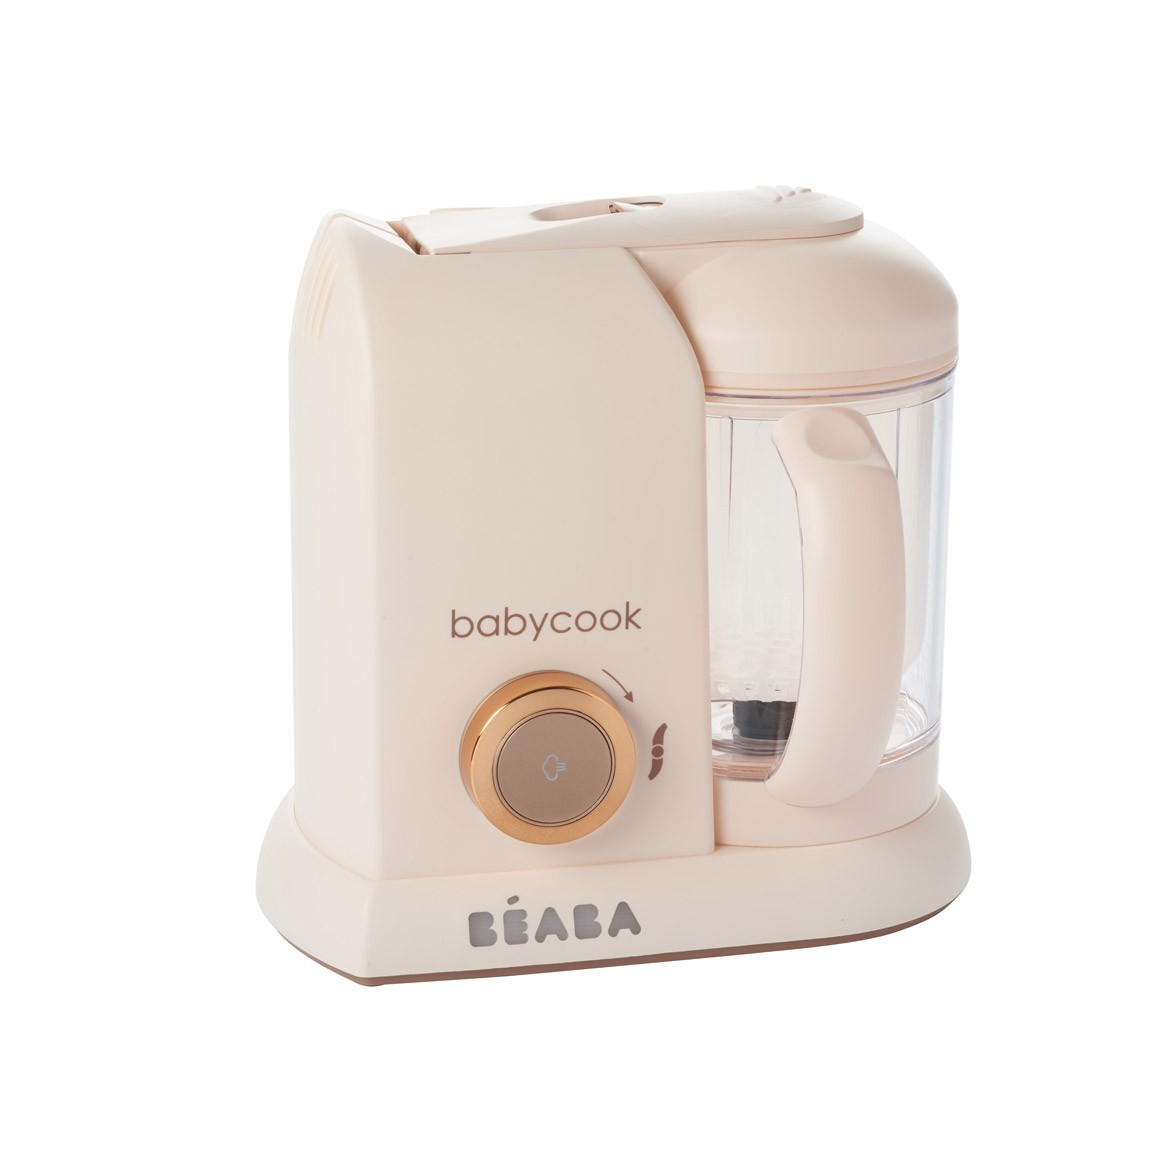 Le robot cuiseur Babycook ® Rose Gold